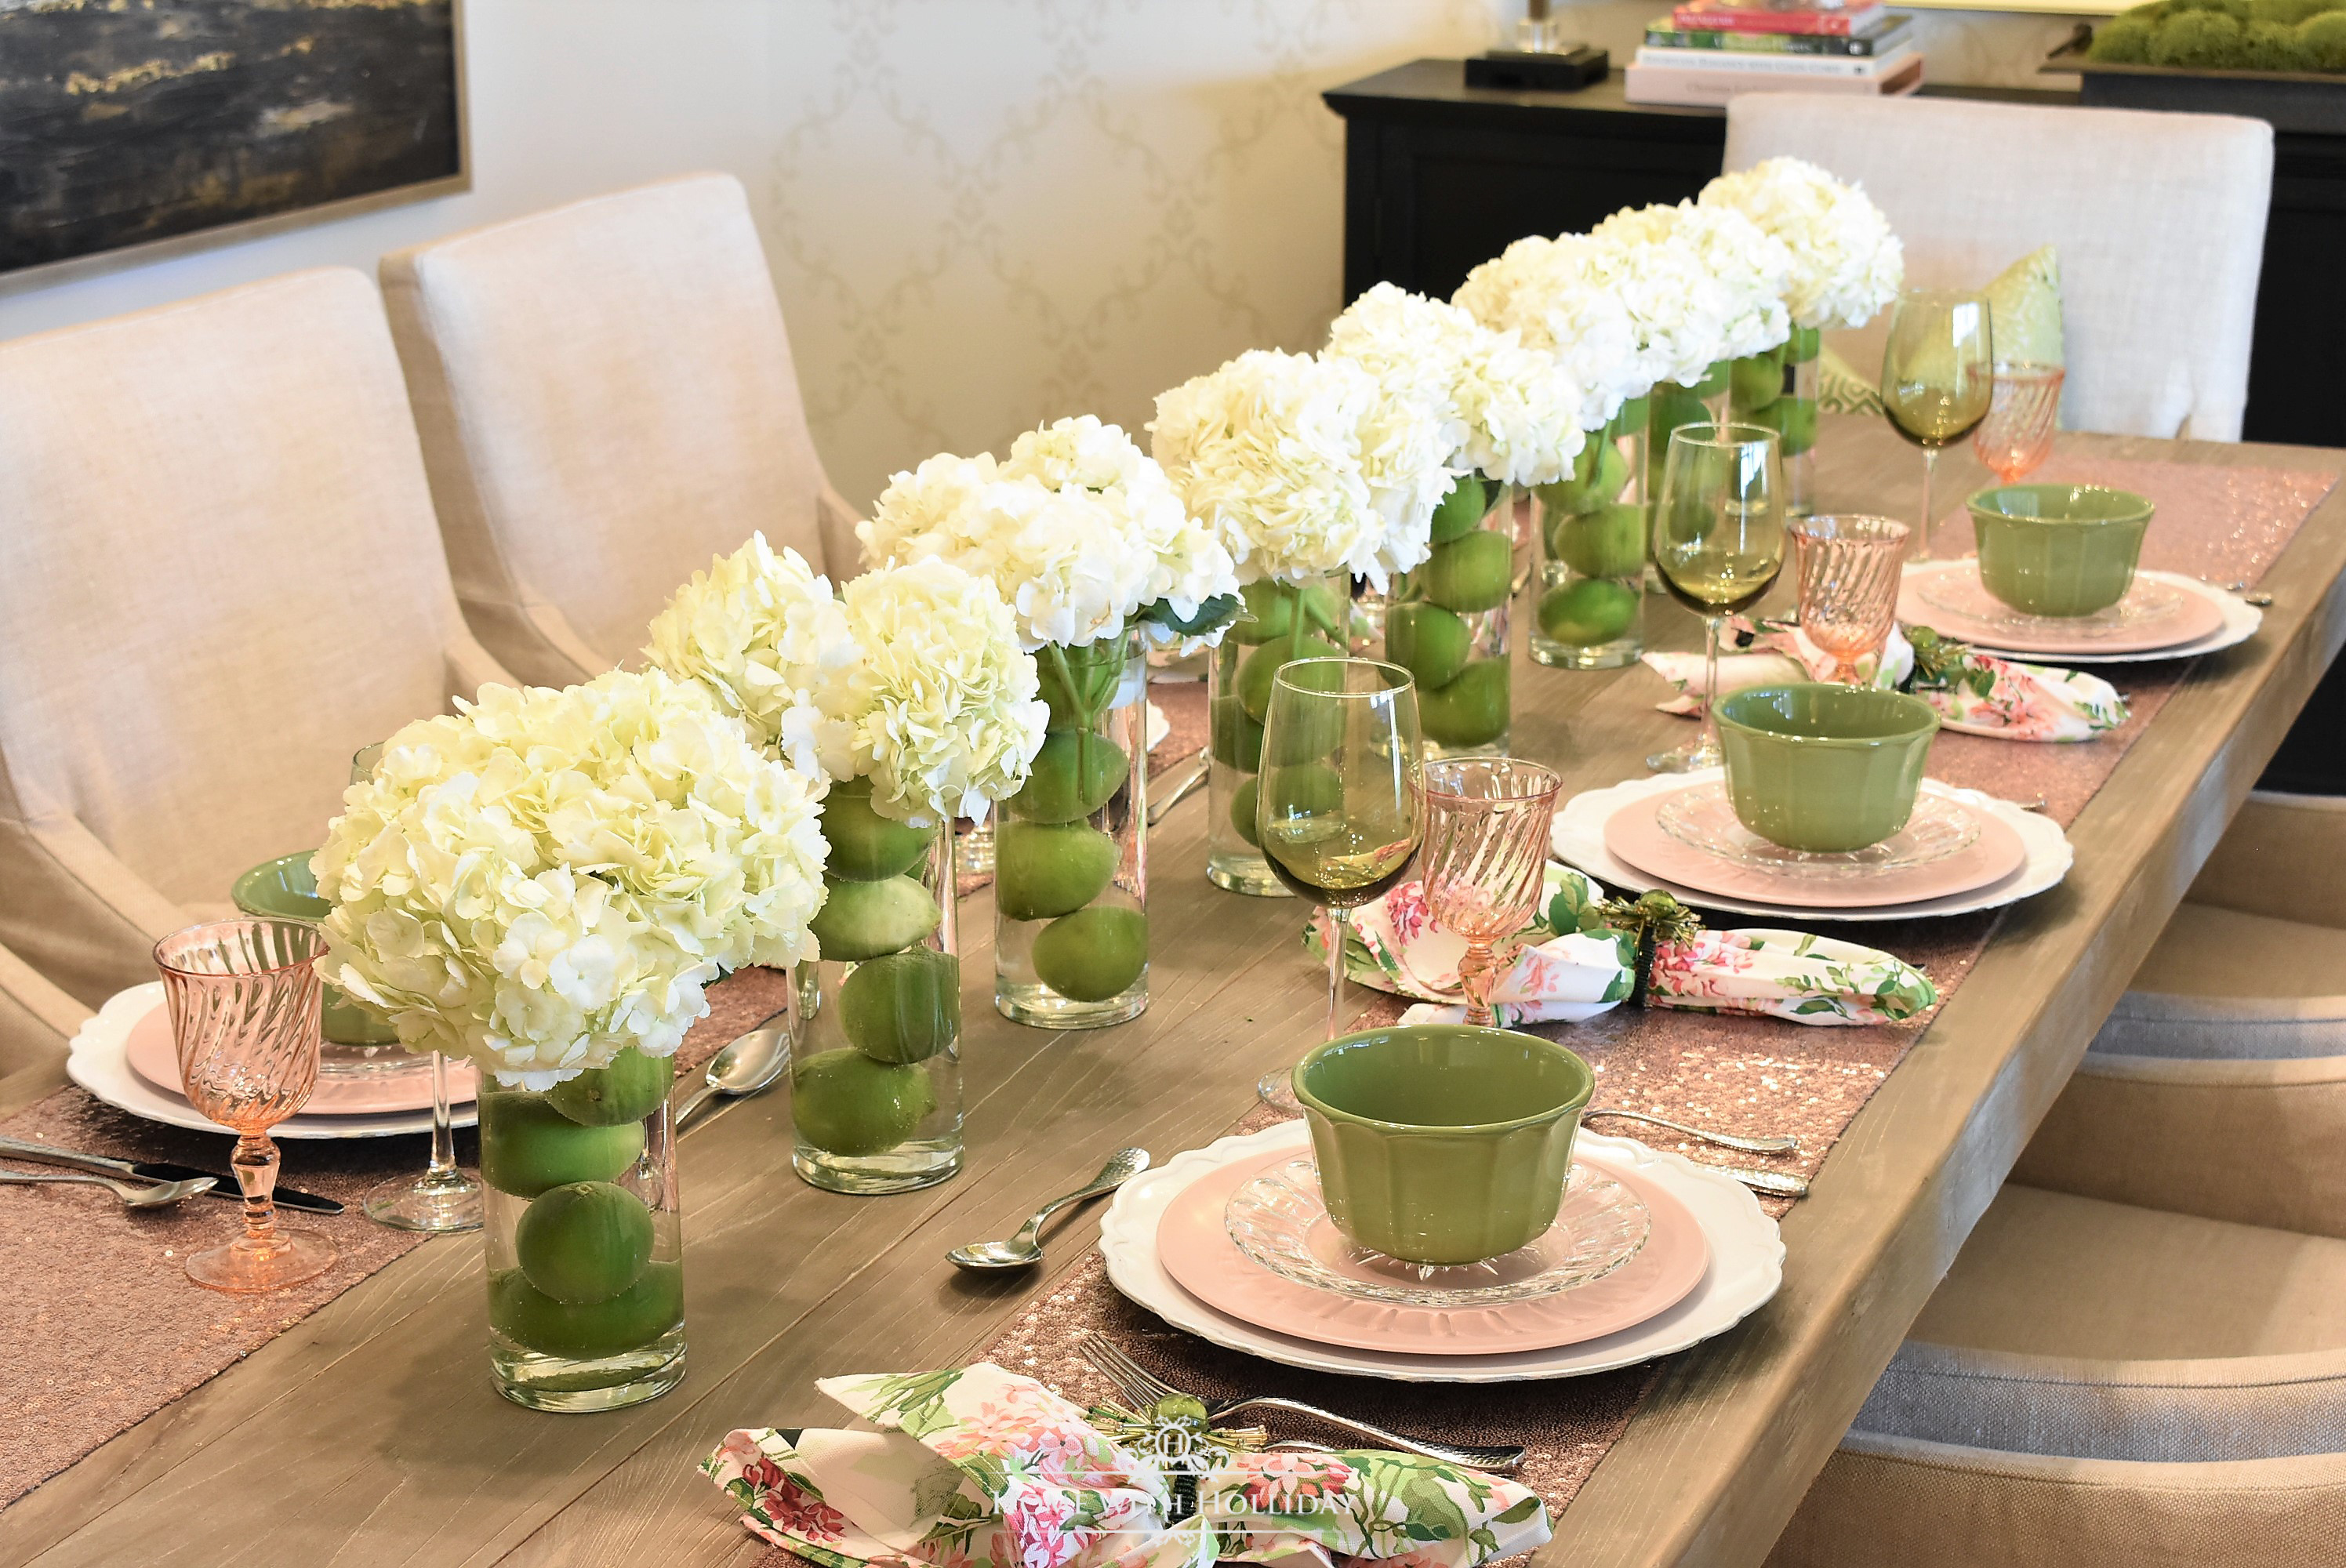 Spring Table Setting for Mother\u0027s Day Luncheon & Spring Table Setting for Mother\u0027s Day Luncheon - Home with Holliday